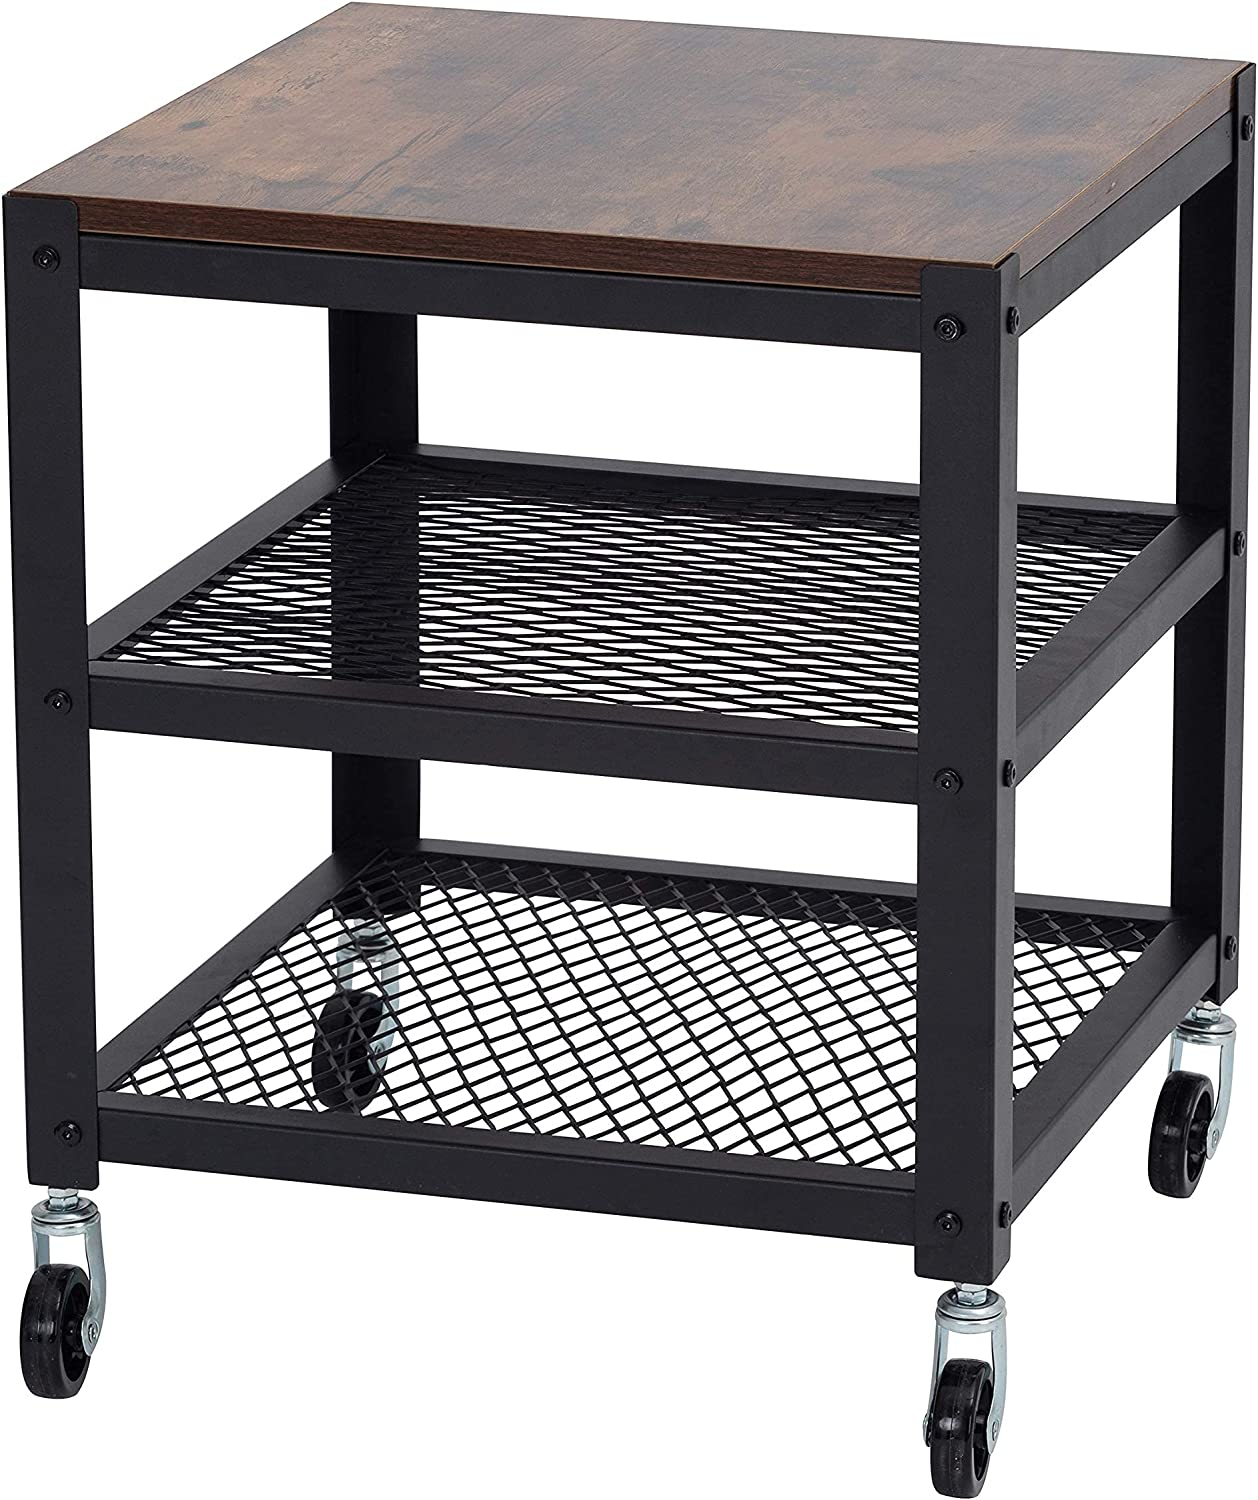 Easy Assembly Industrial High order End Table Storage with Wheels Open 1 year warranty